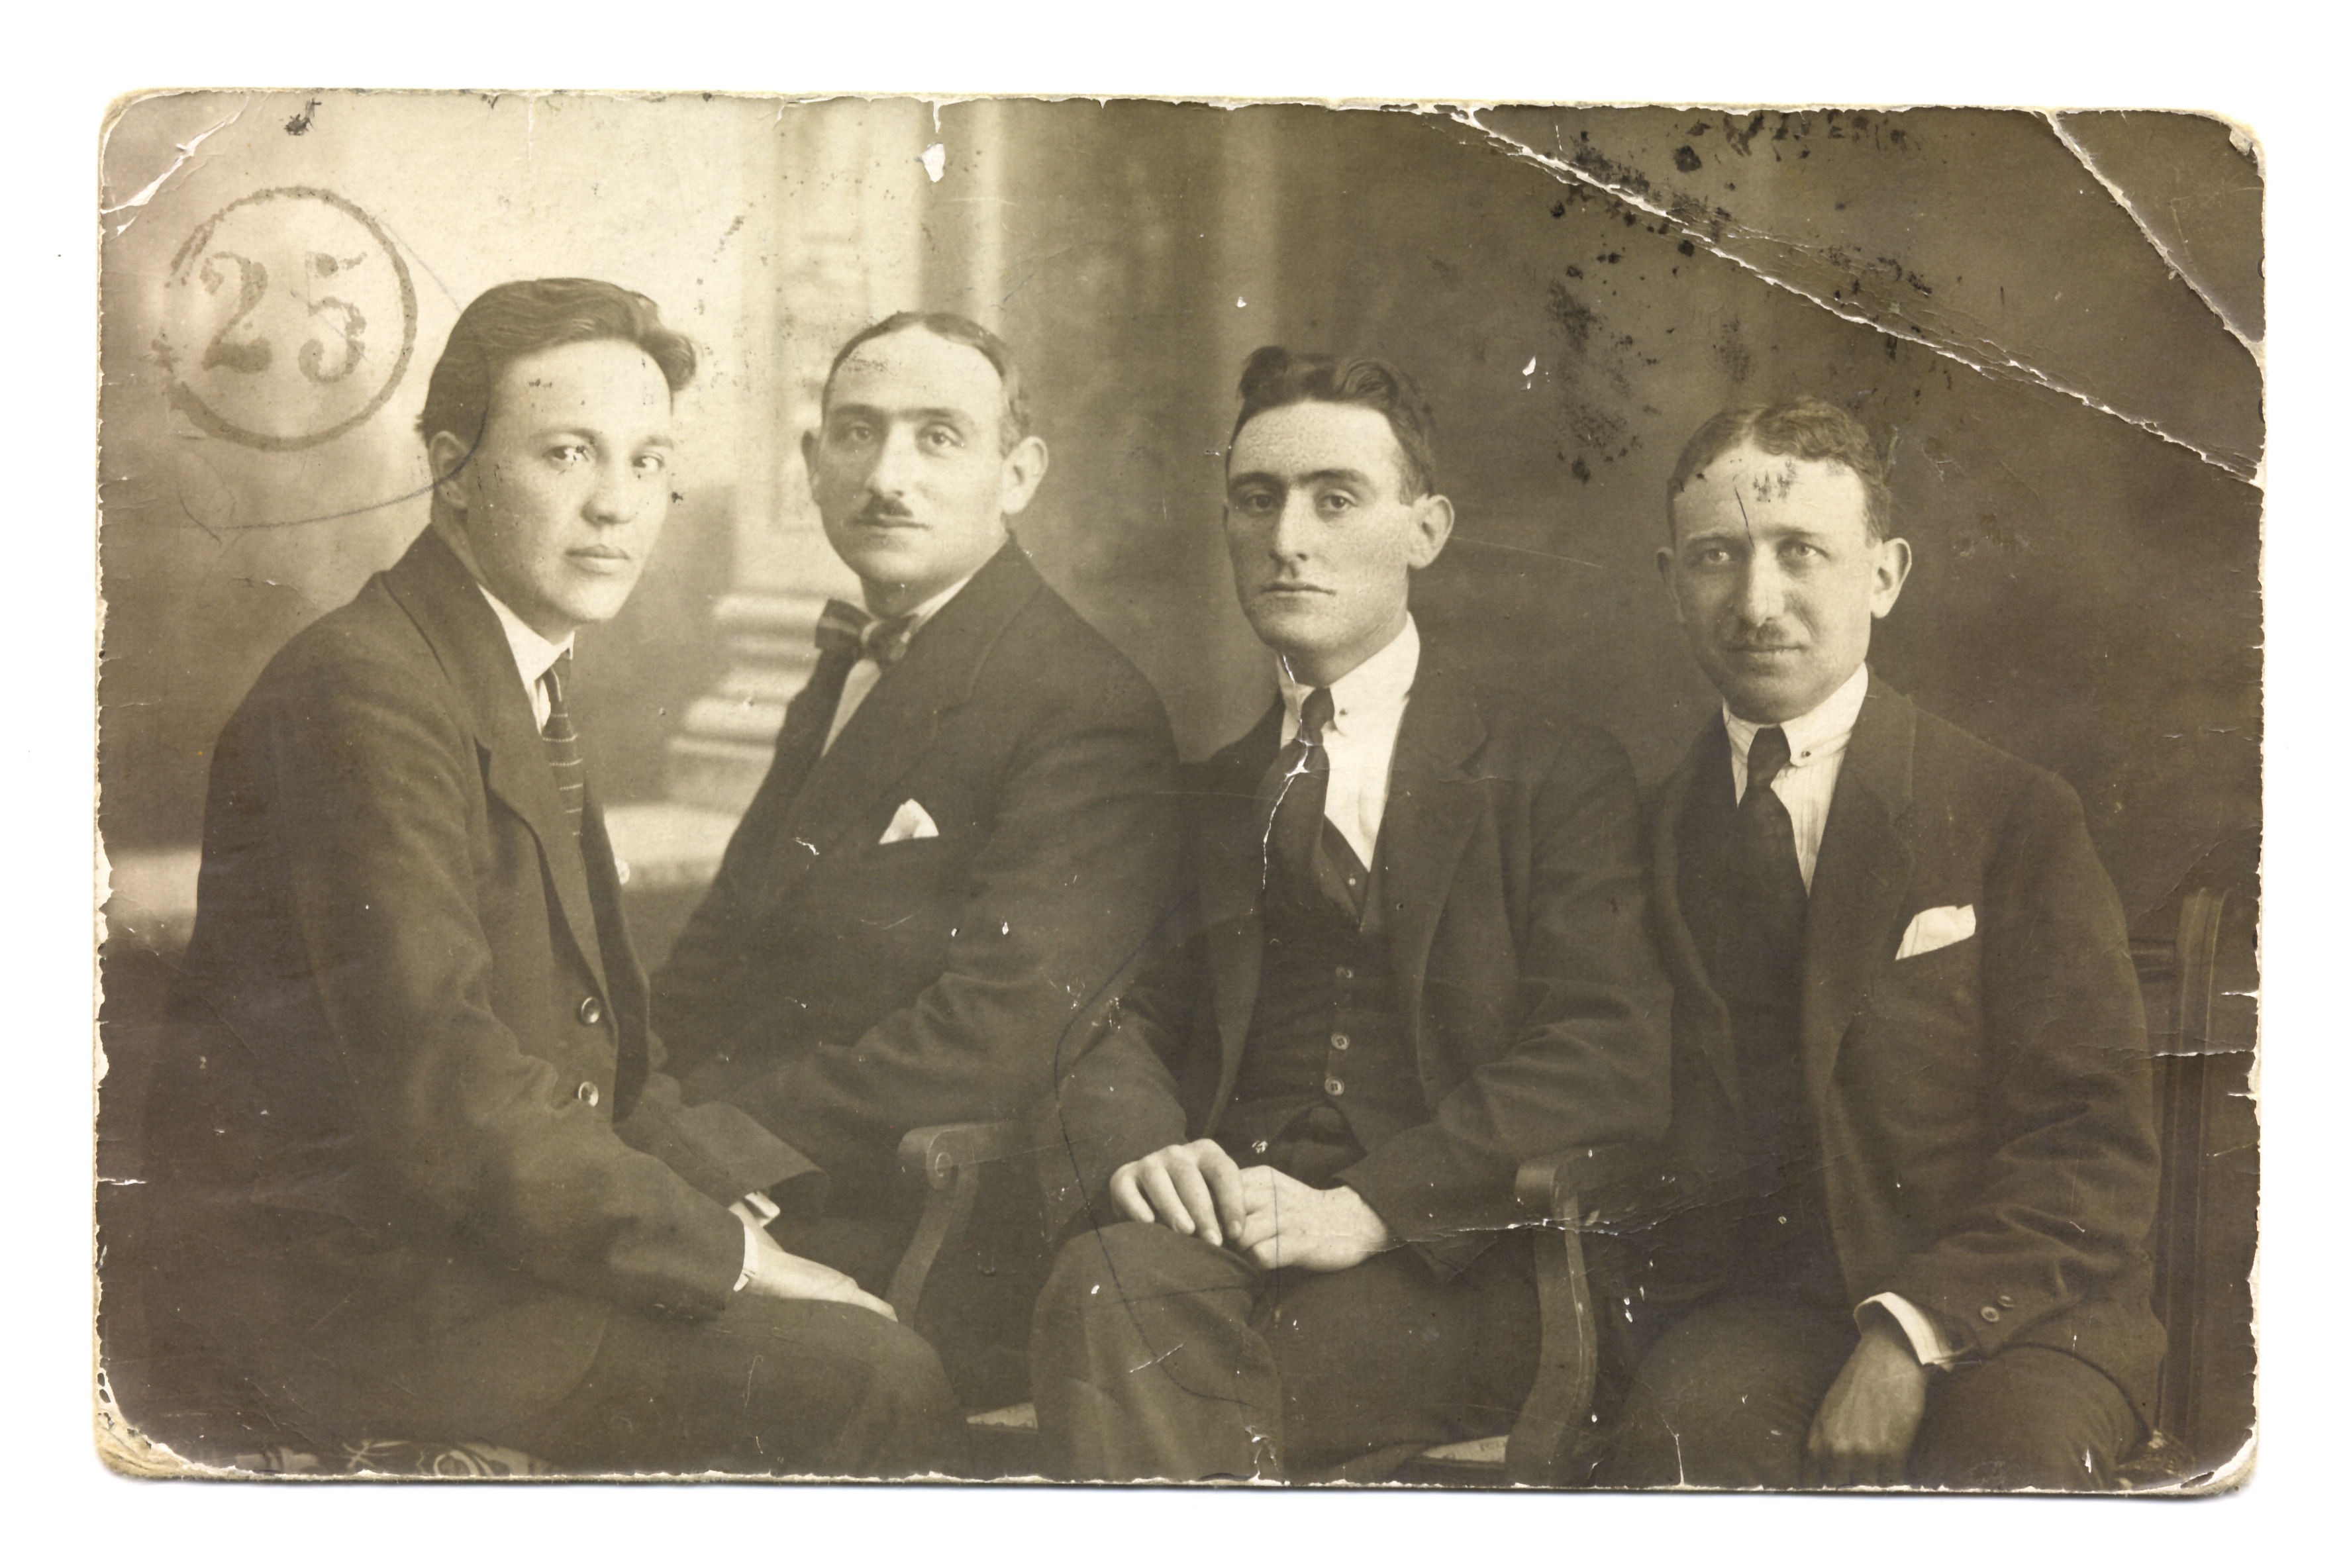 Joseph Saltiel with his brother Mentesh Saltiel and friends